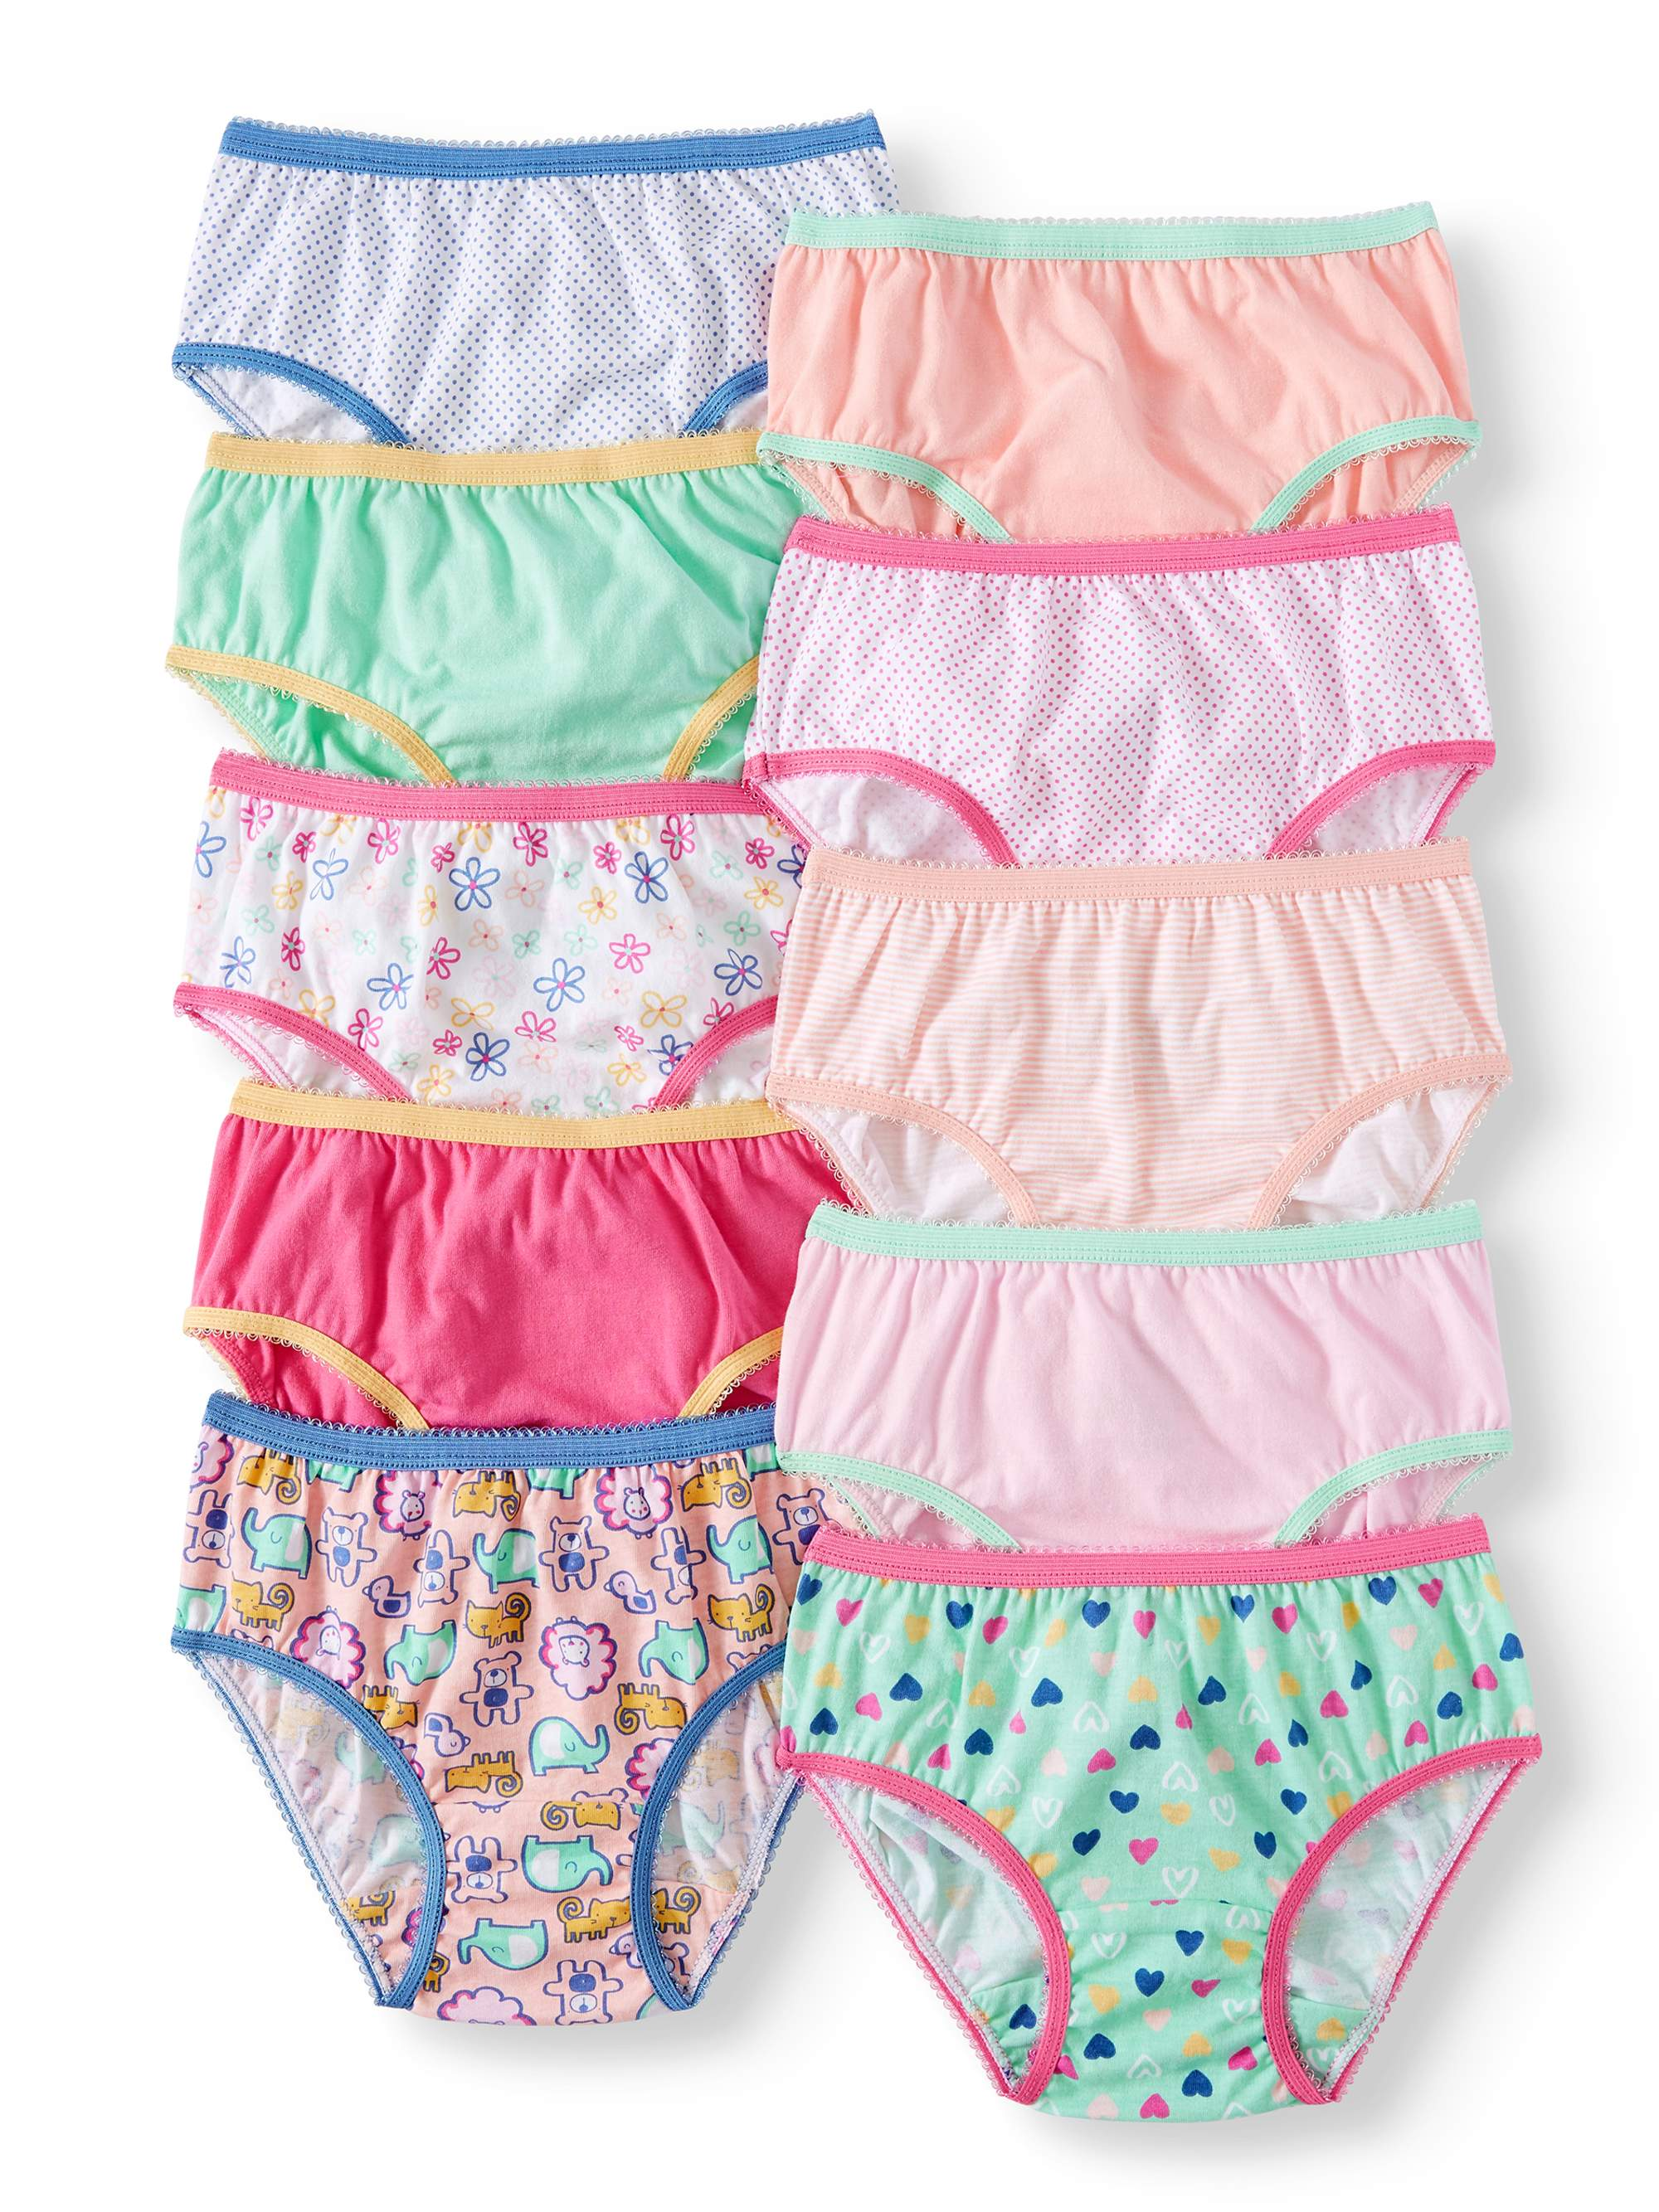 Kids younger girls  Knickers Pants Underwear Briefs Girl/'s Children/'s Assorted